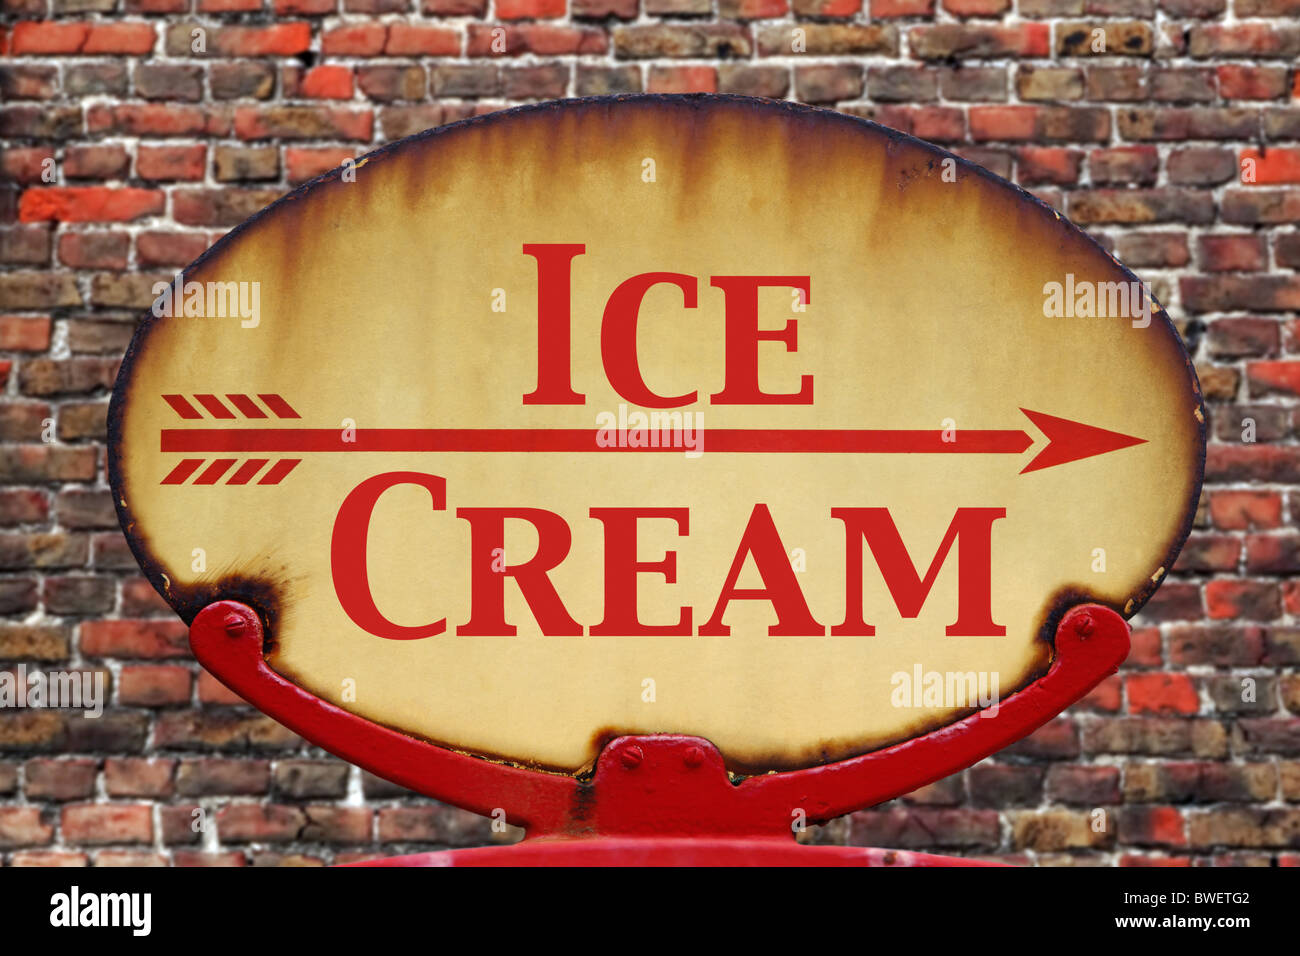 A rusty old retro arrow sign with the text Ice cream - Stock Image